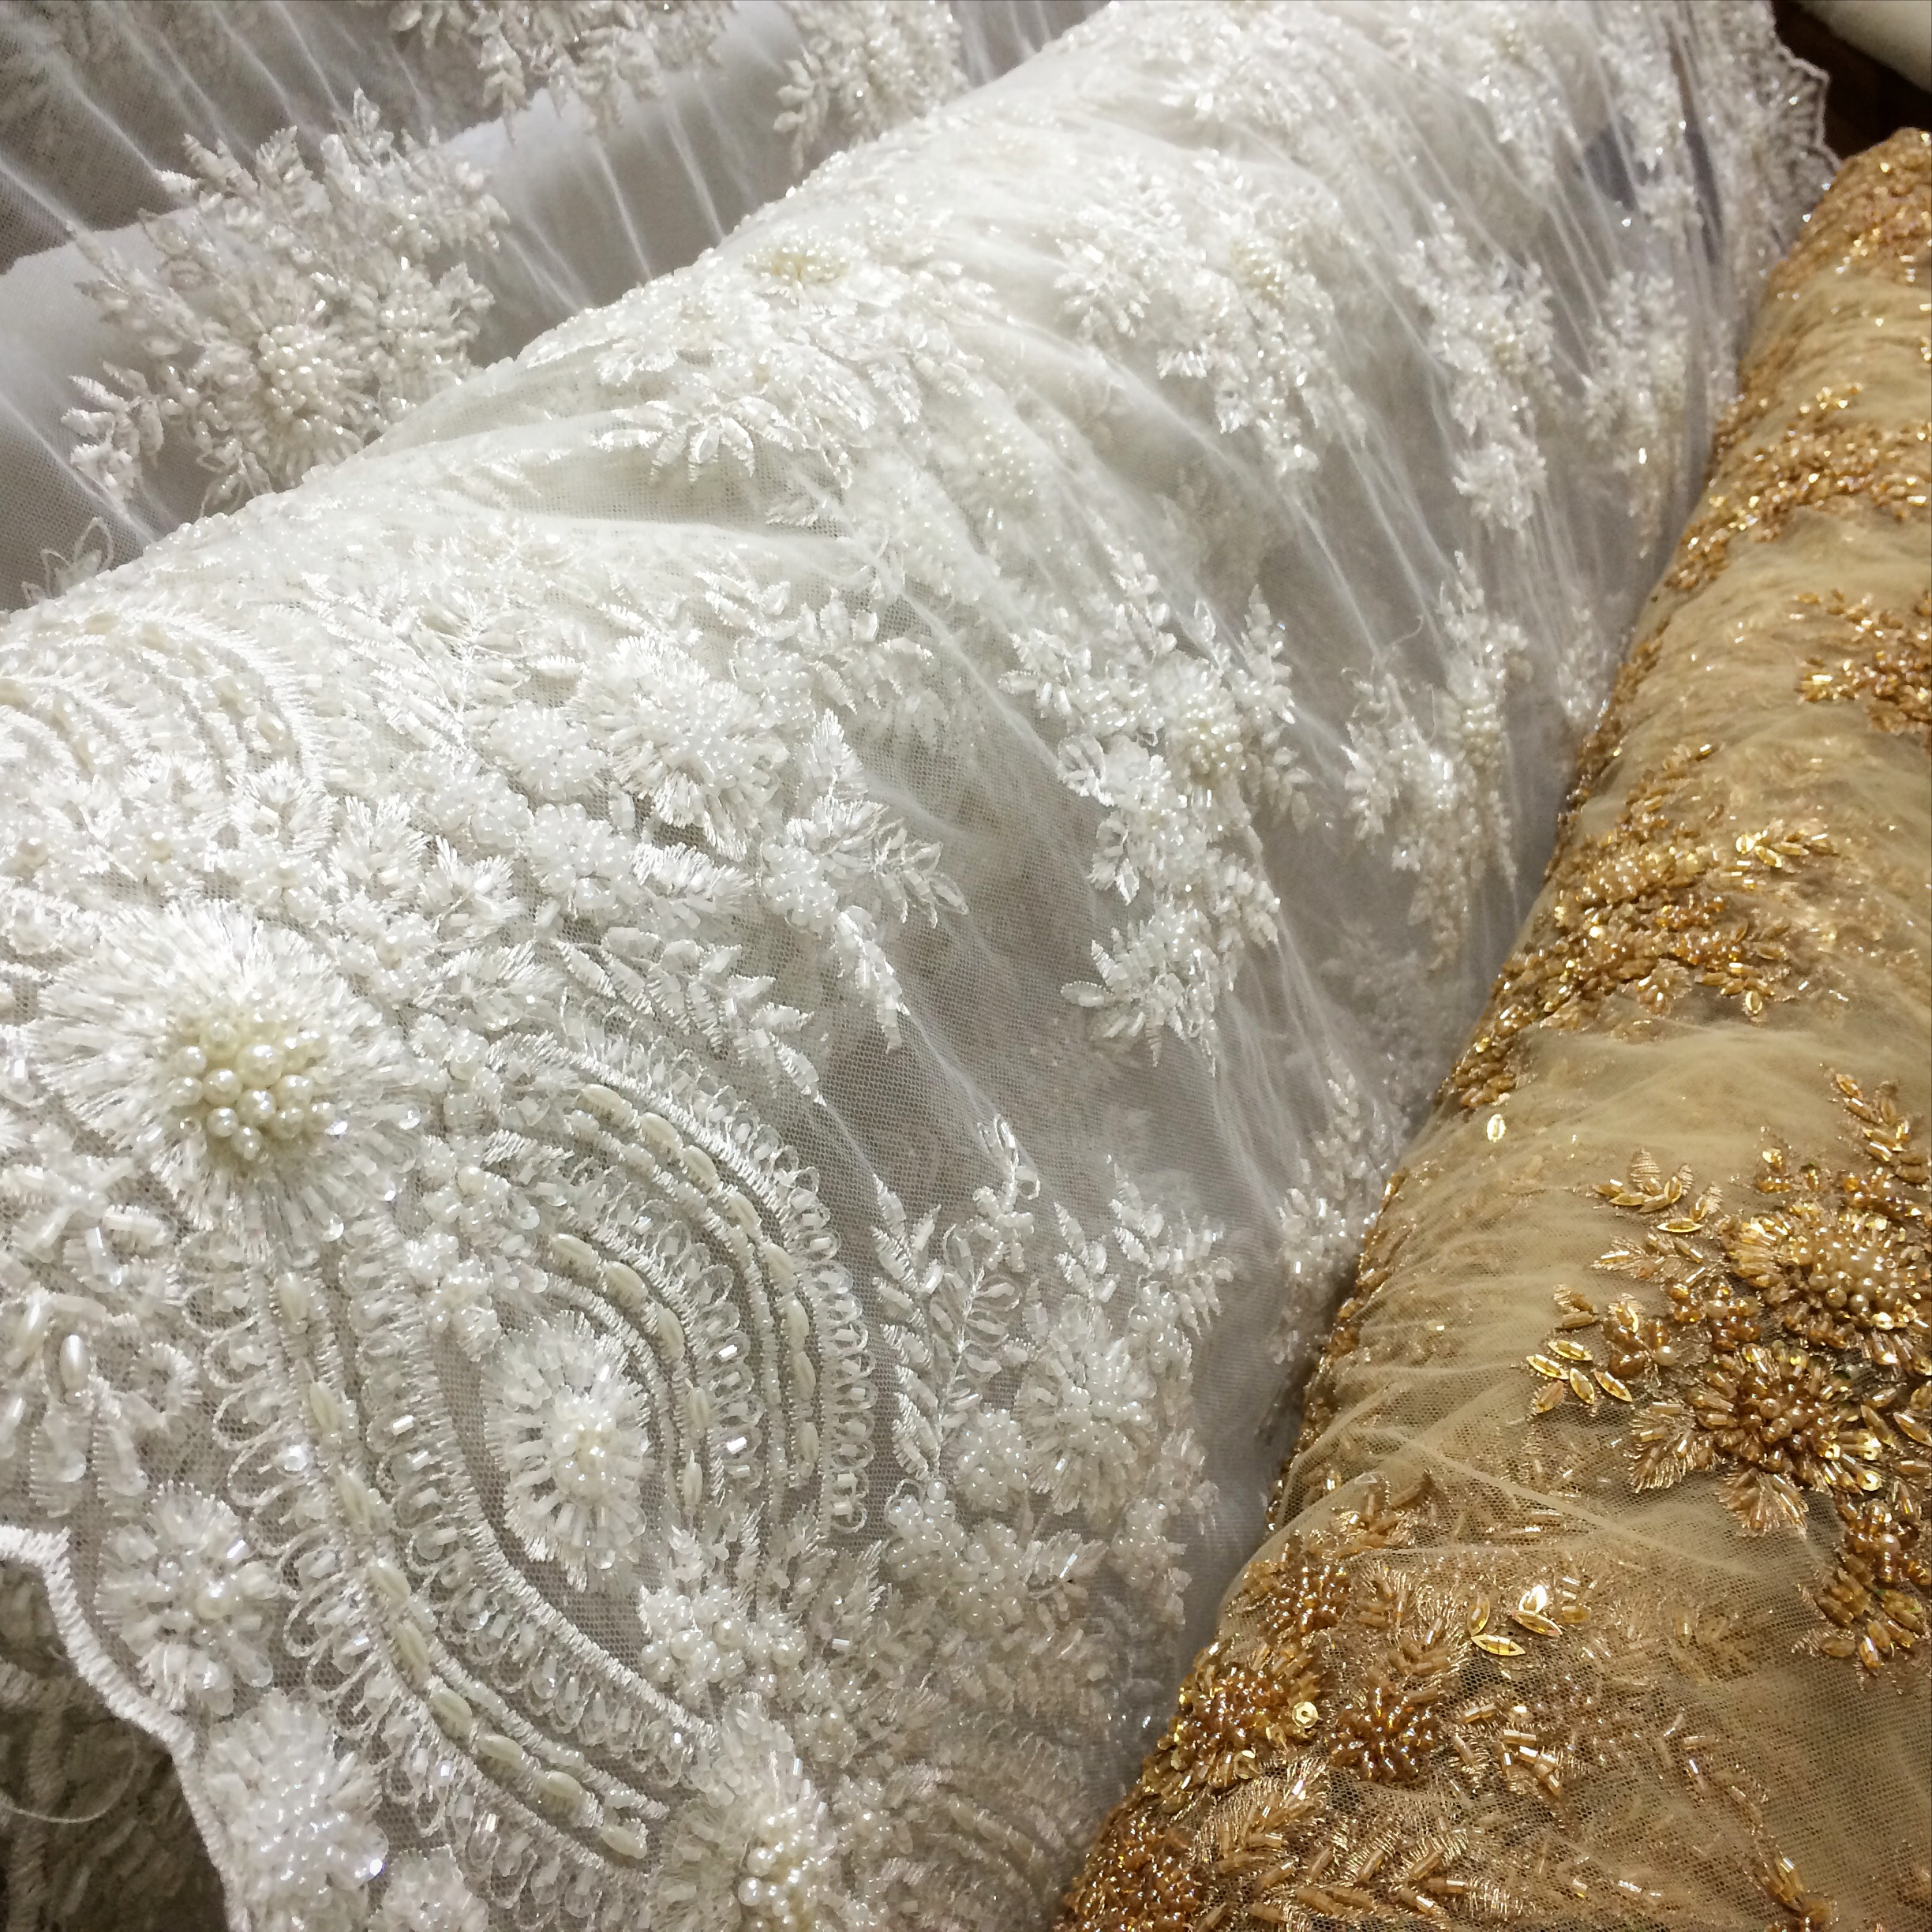 New beaded bridal laces fabric outlet sf for Bridal fabric